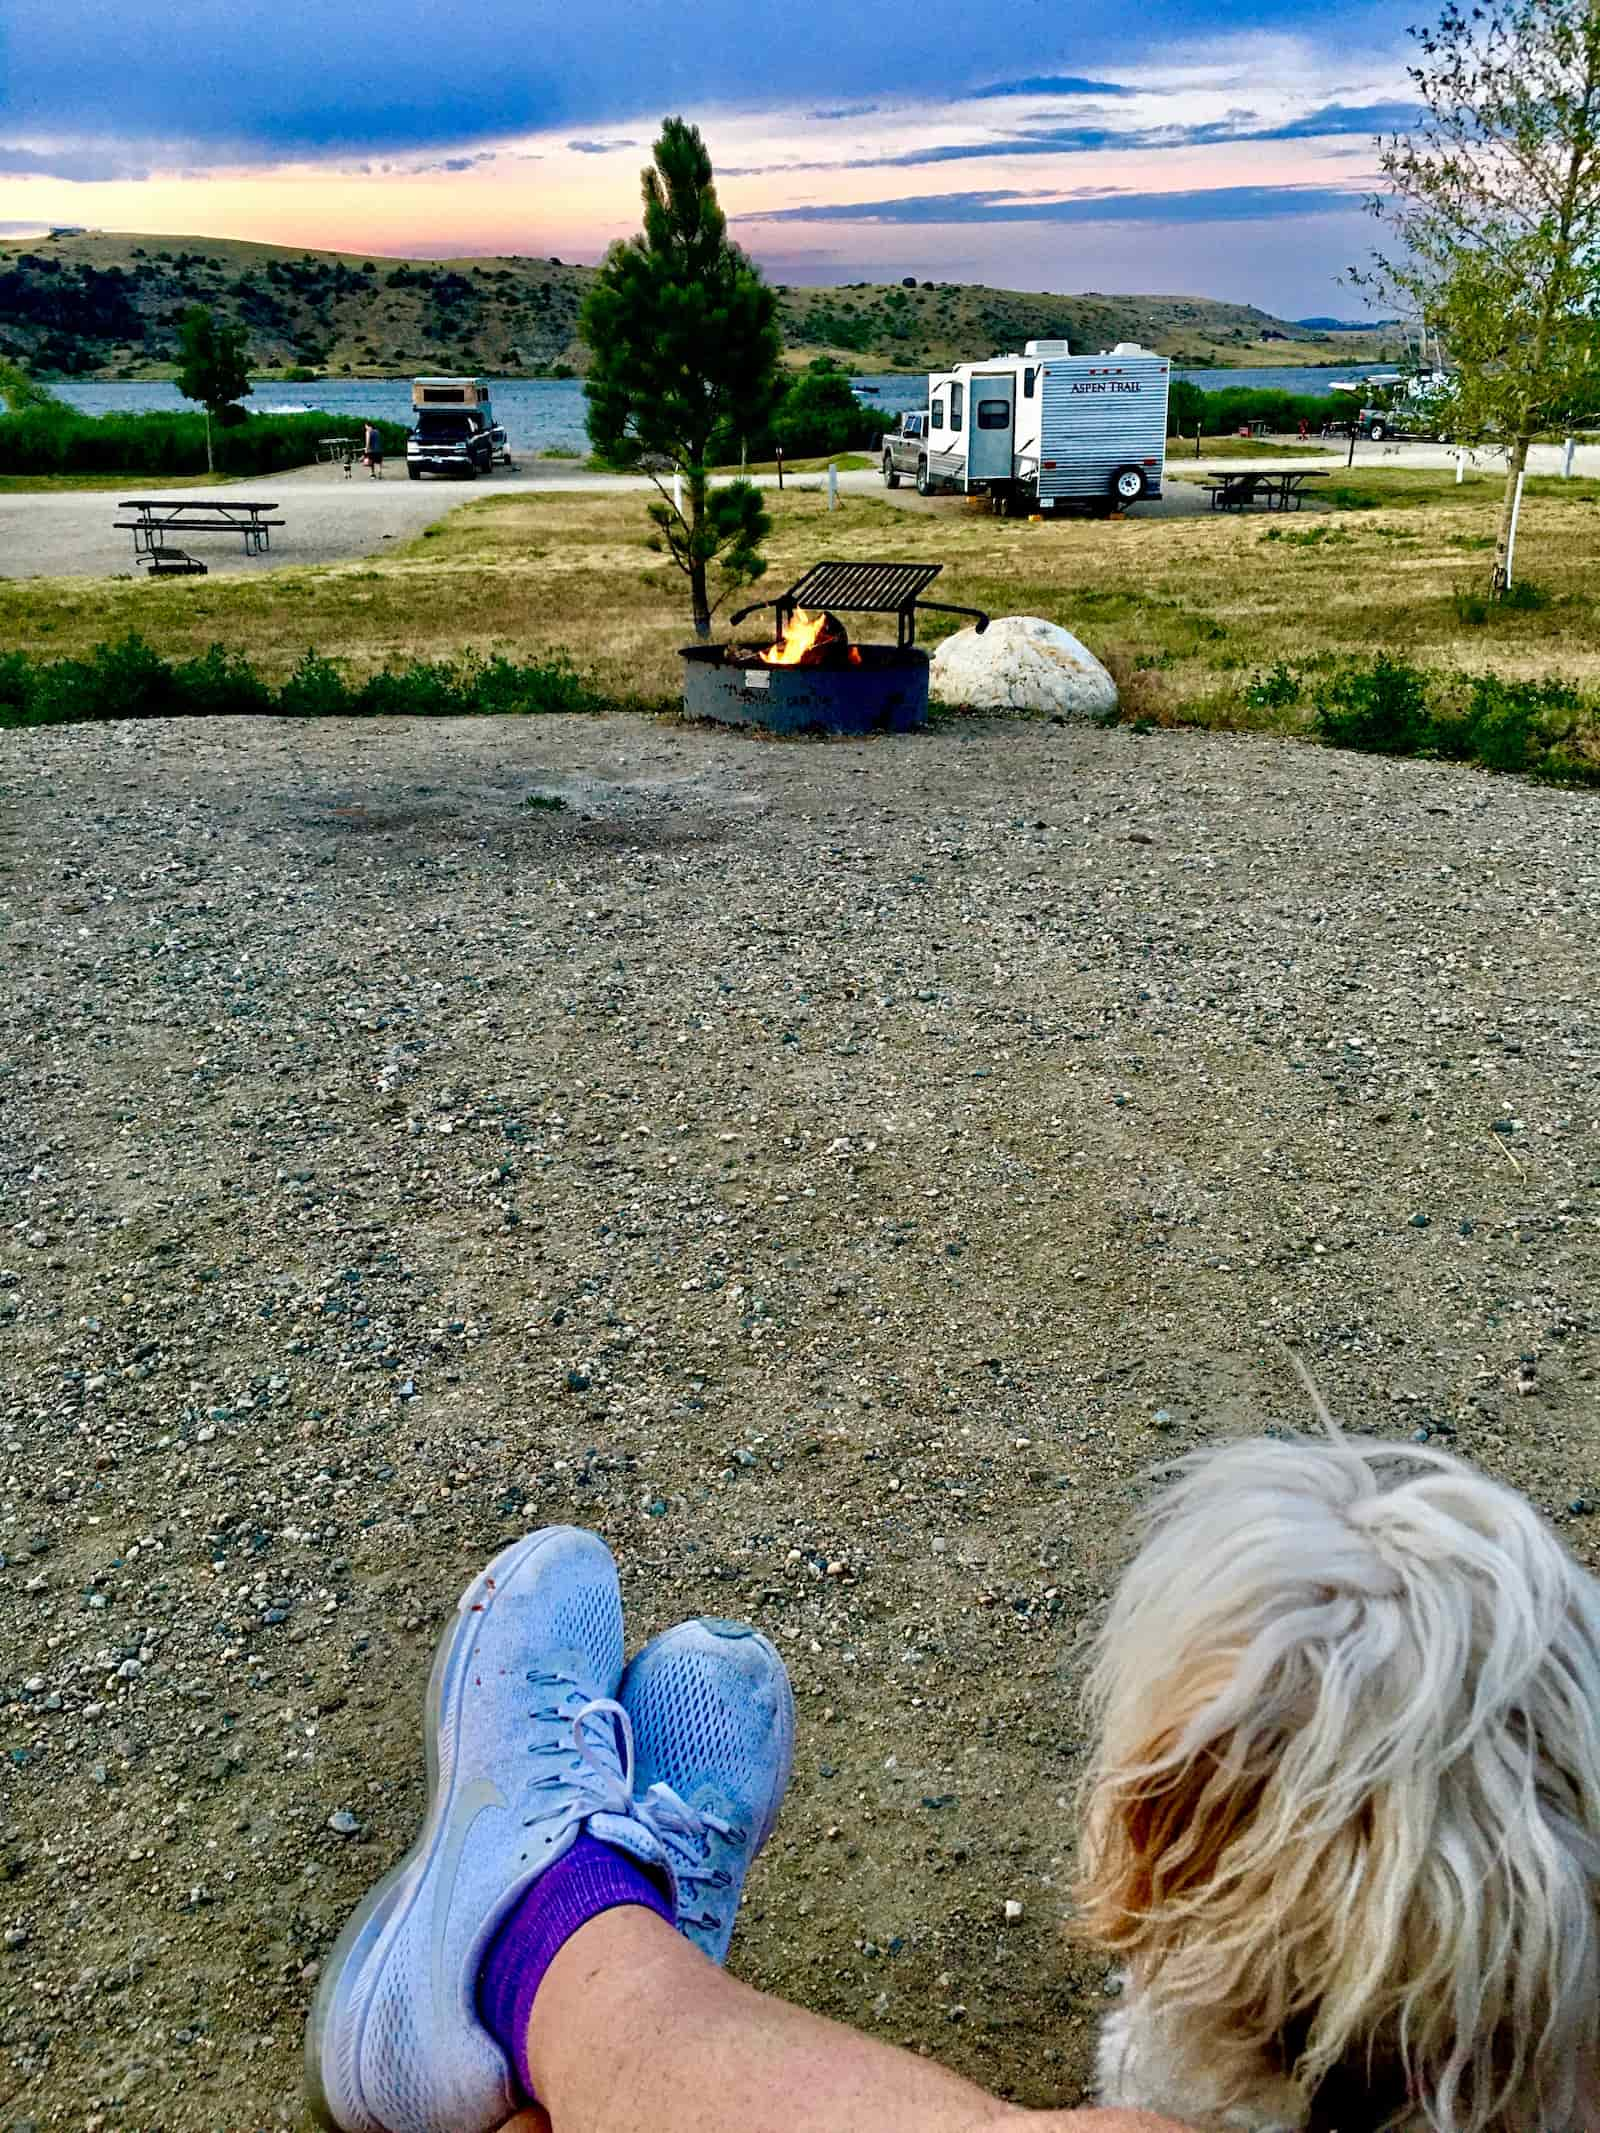 Women sitting nin front of fire with sunset and RV in the background.